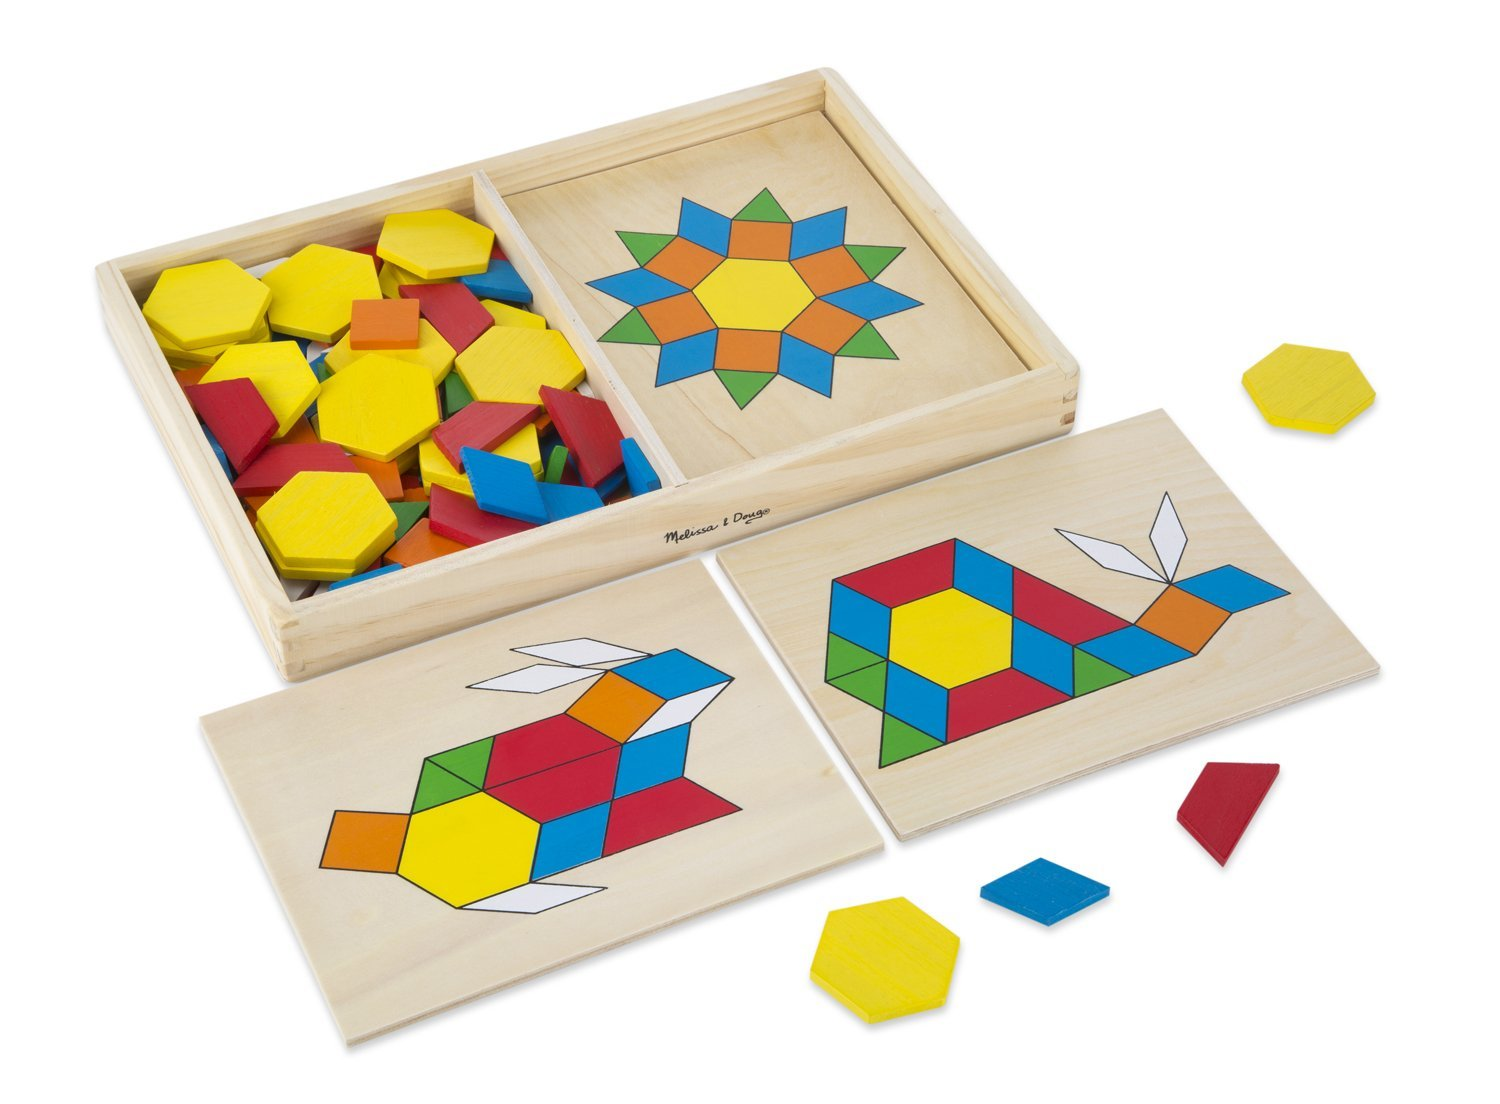 Pattern Blocks and Boards for Learning Shapes